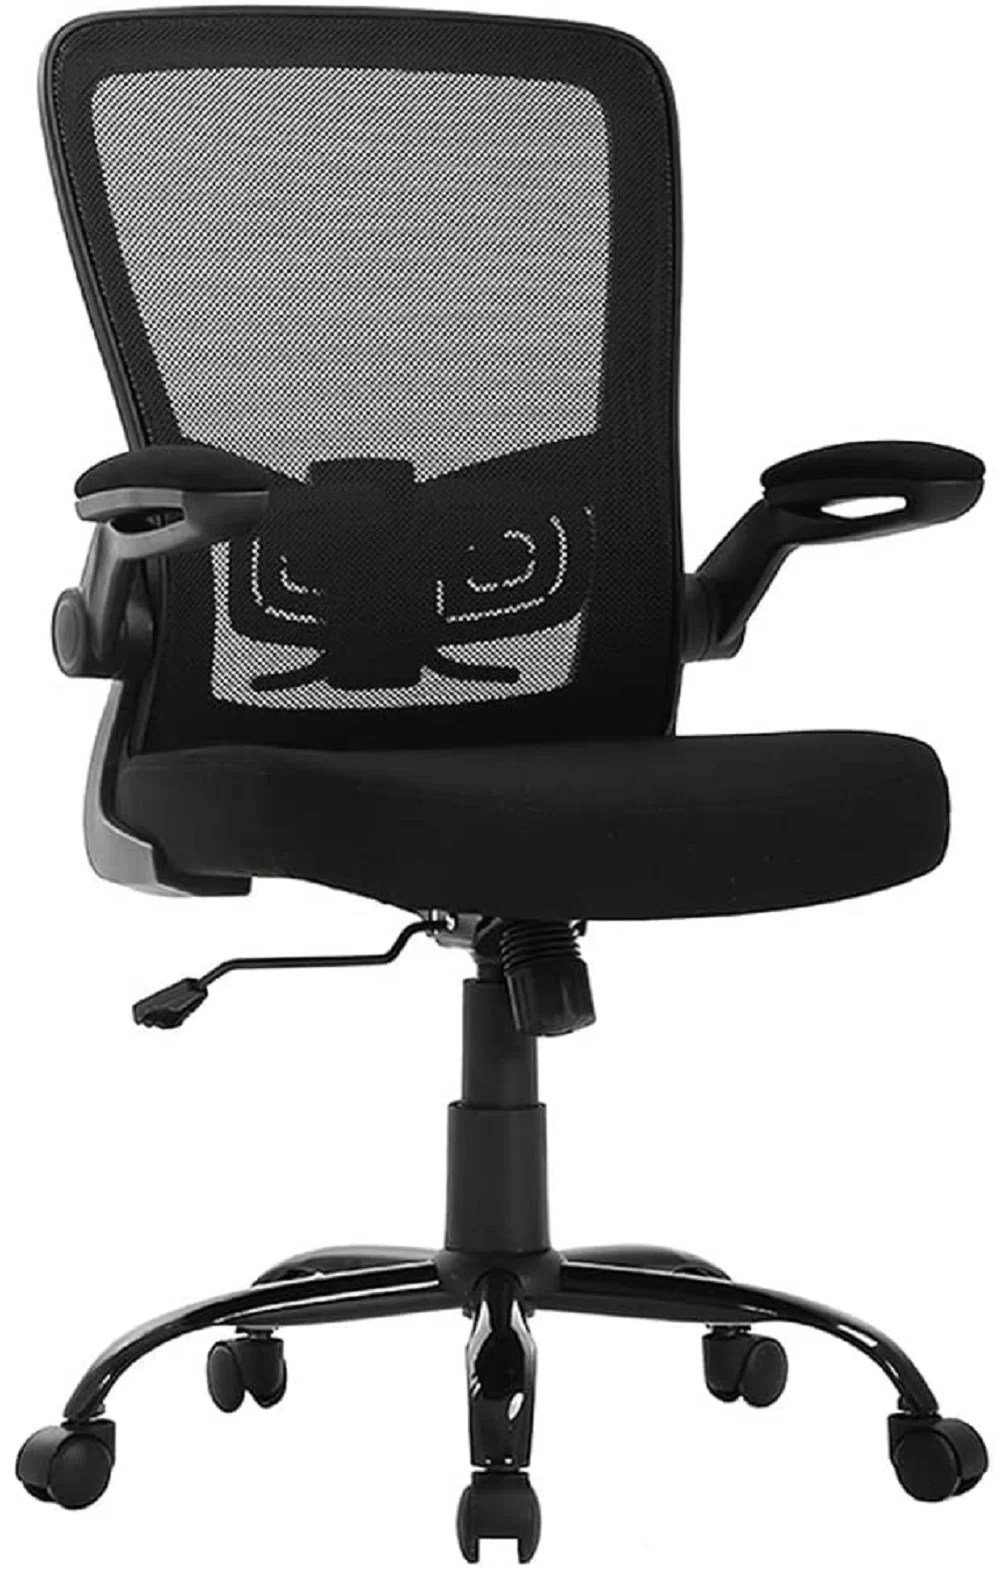 Inbox Zero Ergonomic Office Chair Desk Chair Mesh Computer Chair With Lumbar Support Flip Up Arms Swivel Rolling Adjustable Mid Back Computer Chair For Women Men Adults Black Wayfair